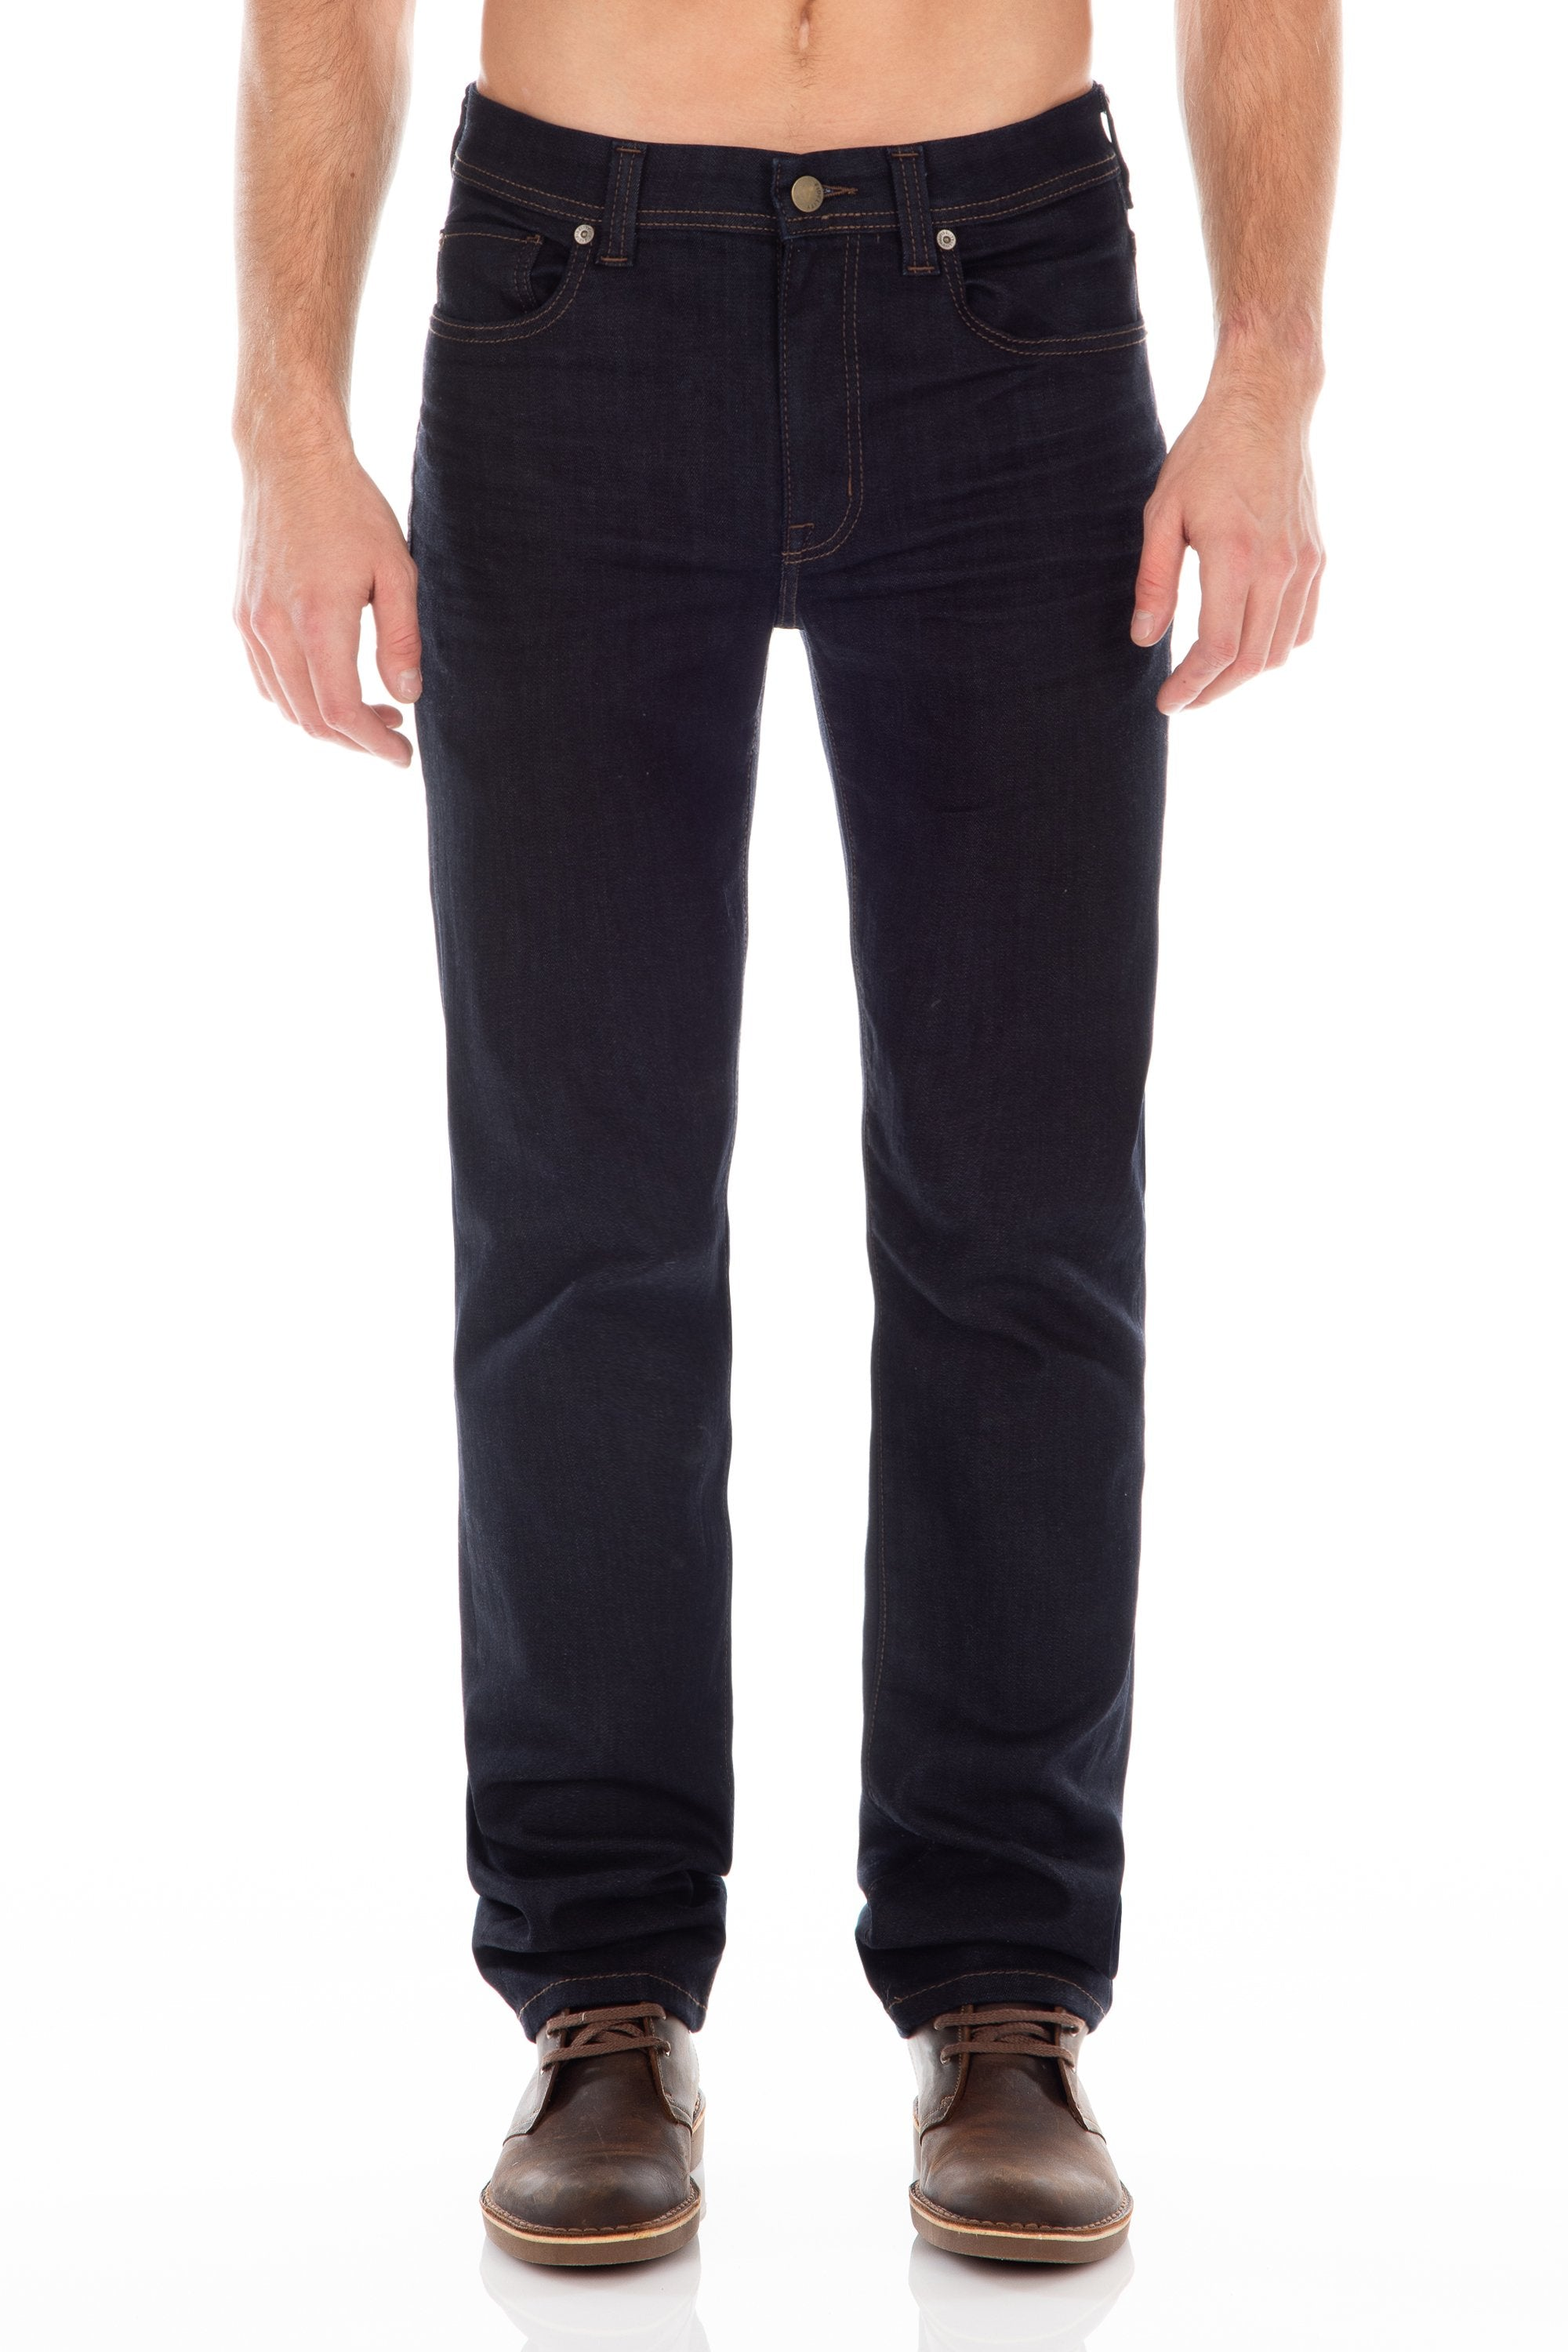 Jimmy New Revolution Jeans